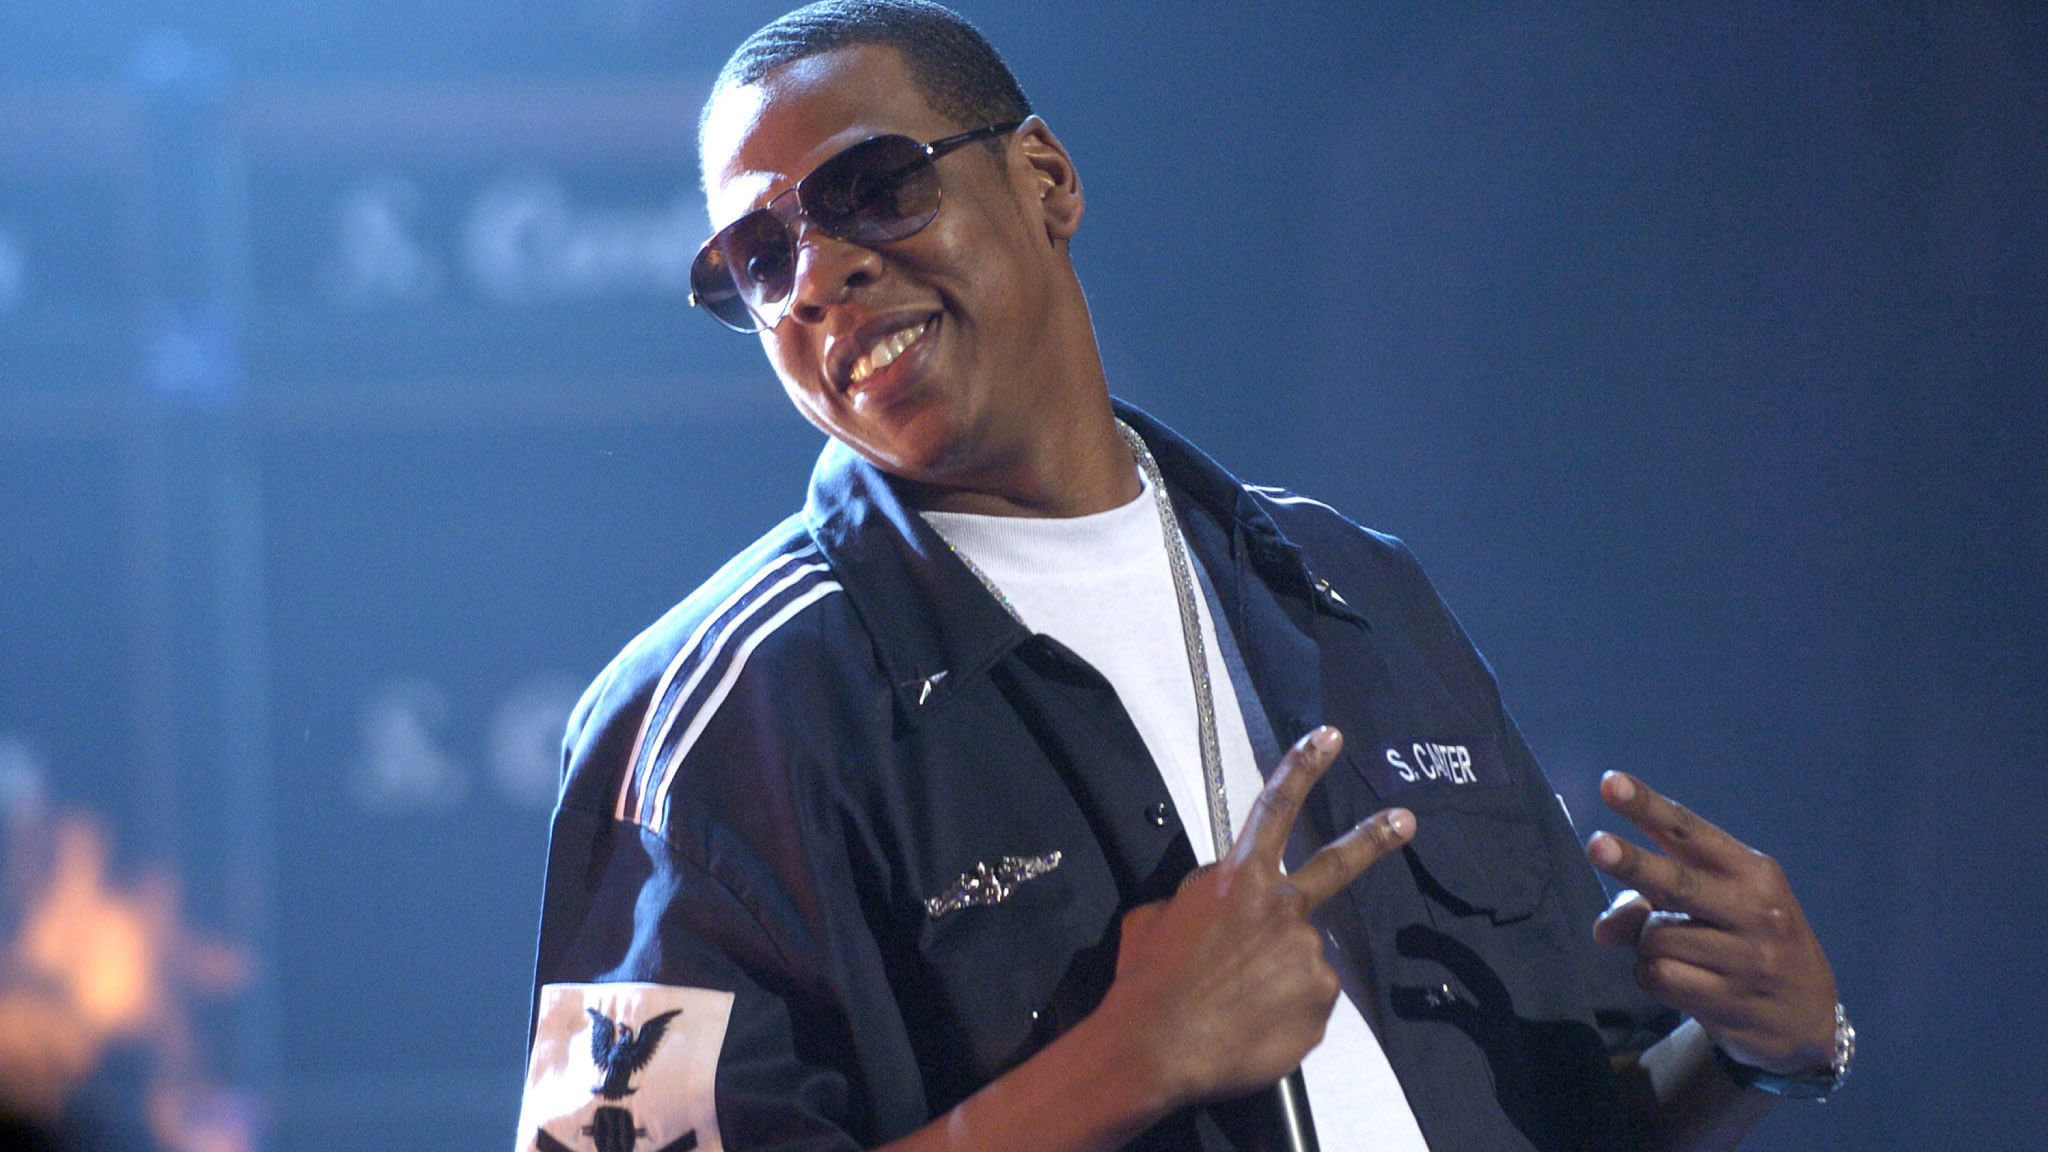 Jay-Z Teams Up With The NFL For Social Justice Initiatives And Entertainment